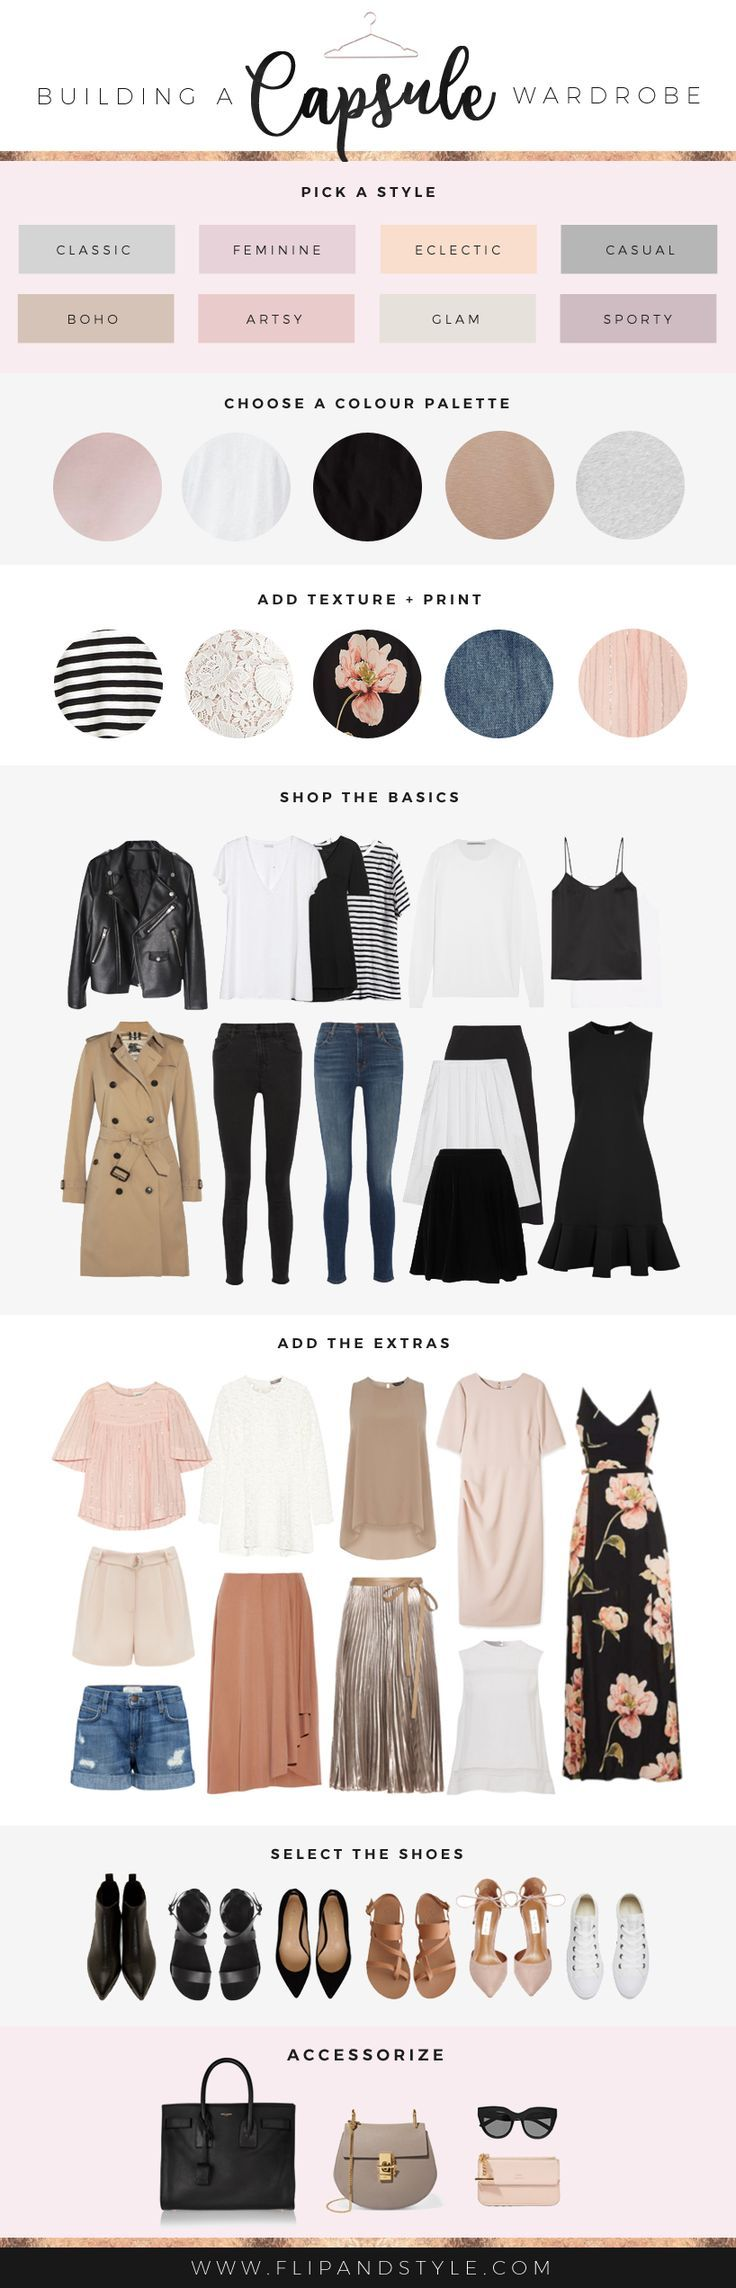 How to build a capsule wardrobe at the top pandora for Minimalist essentials